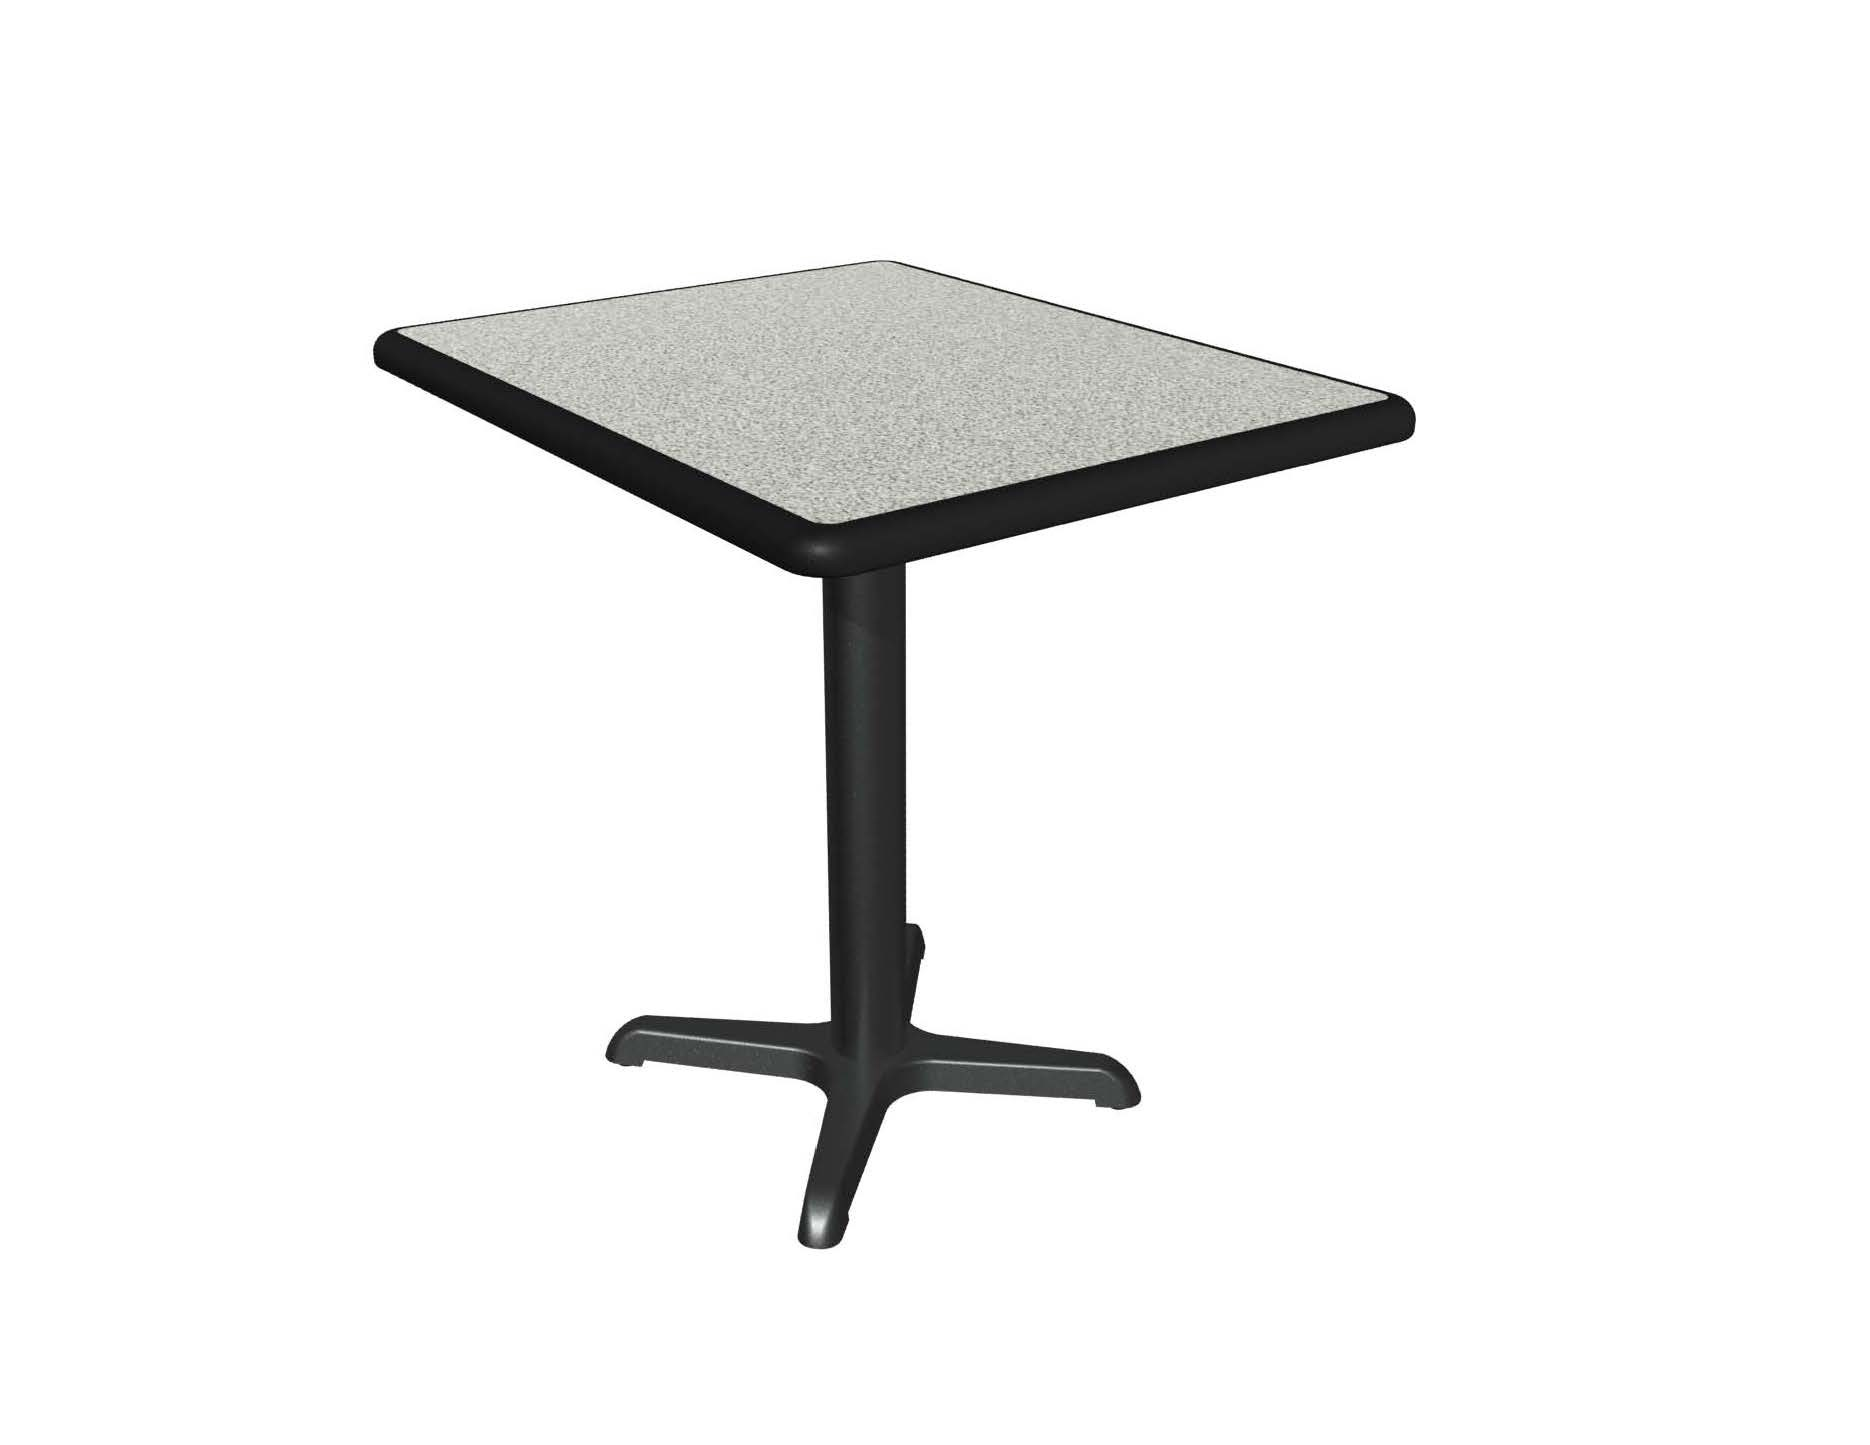 Grey Nebula Laminate Table Top, Black Dur A Edge, Base Sold Separately